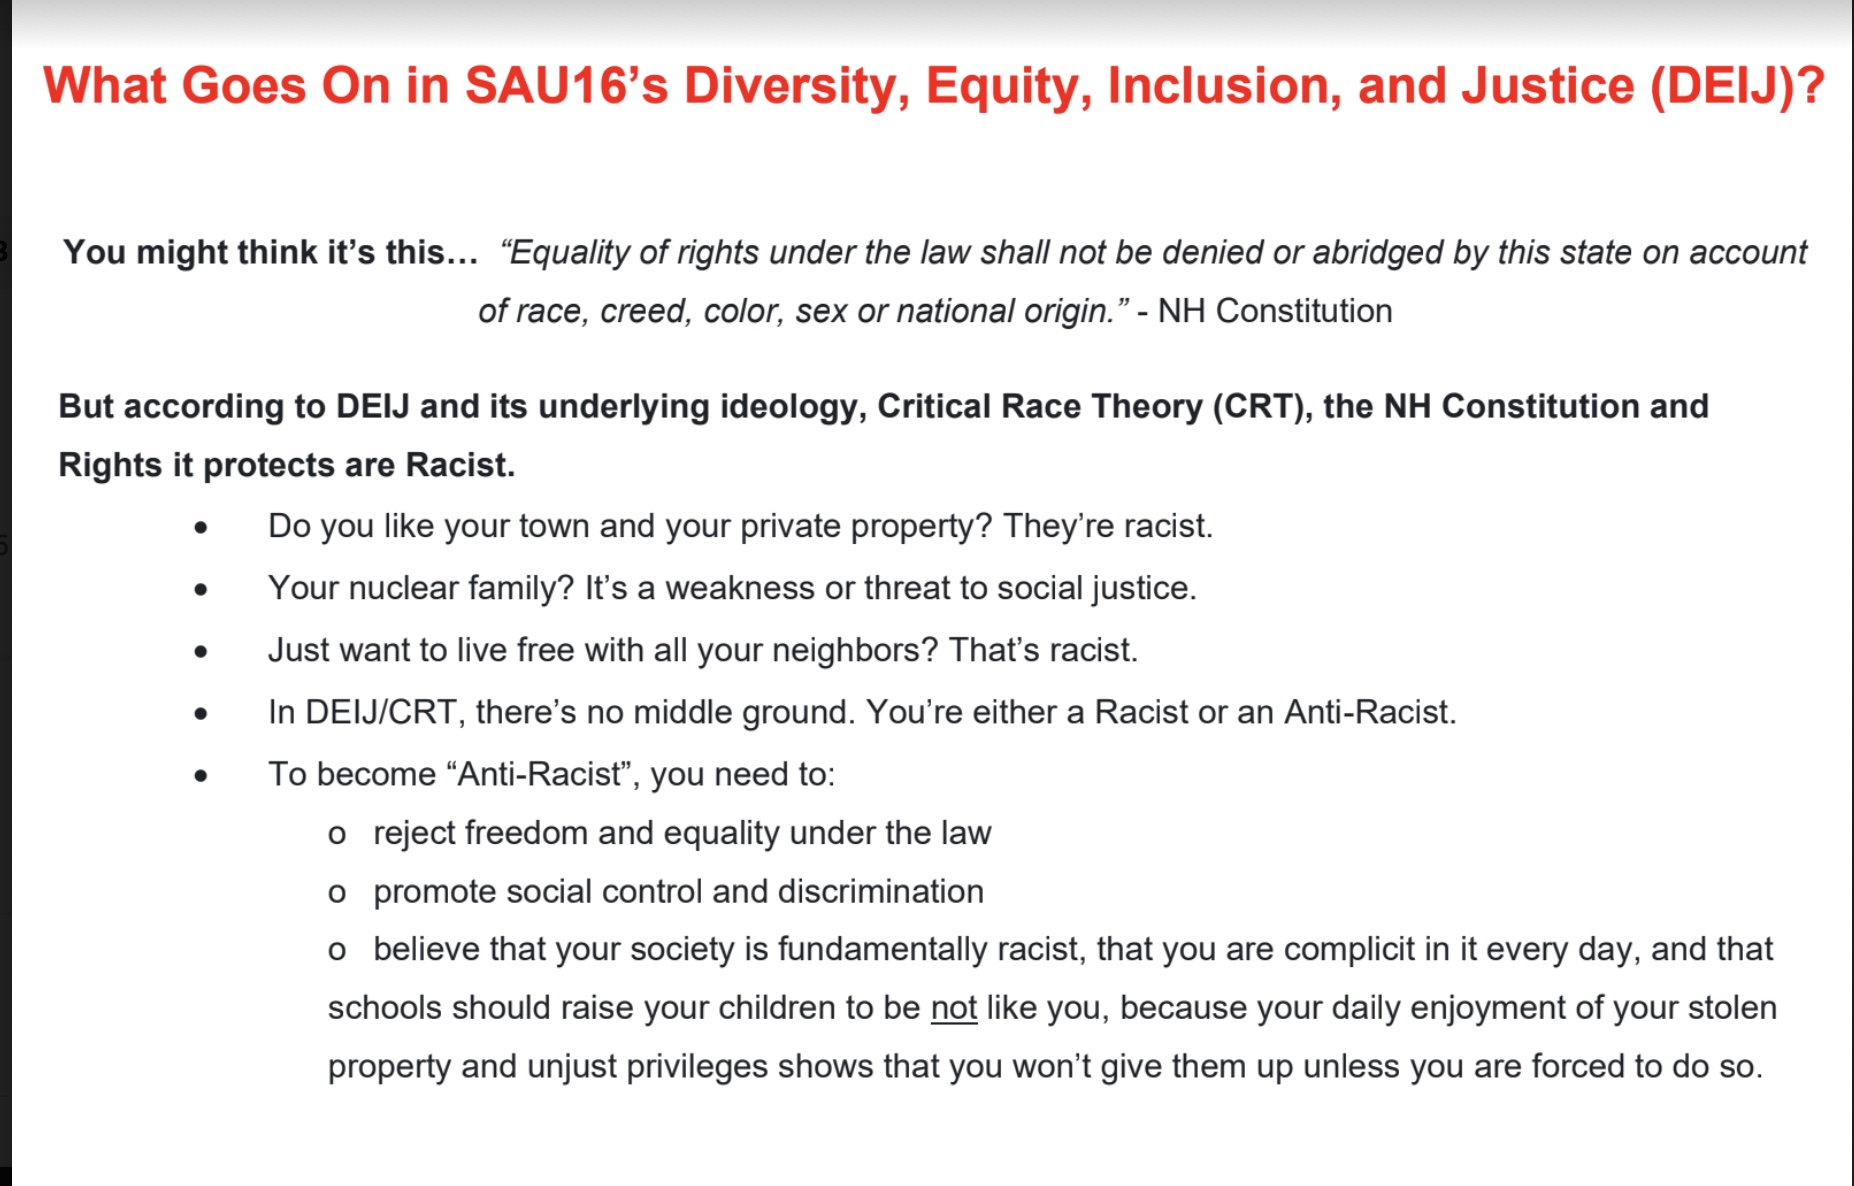 SAU 16 Diversity, equity, and inclusion